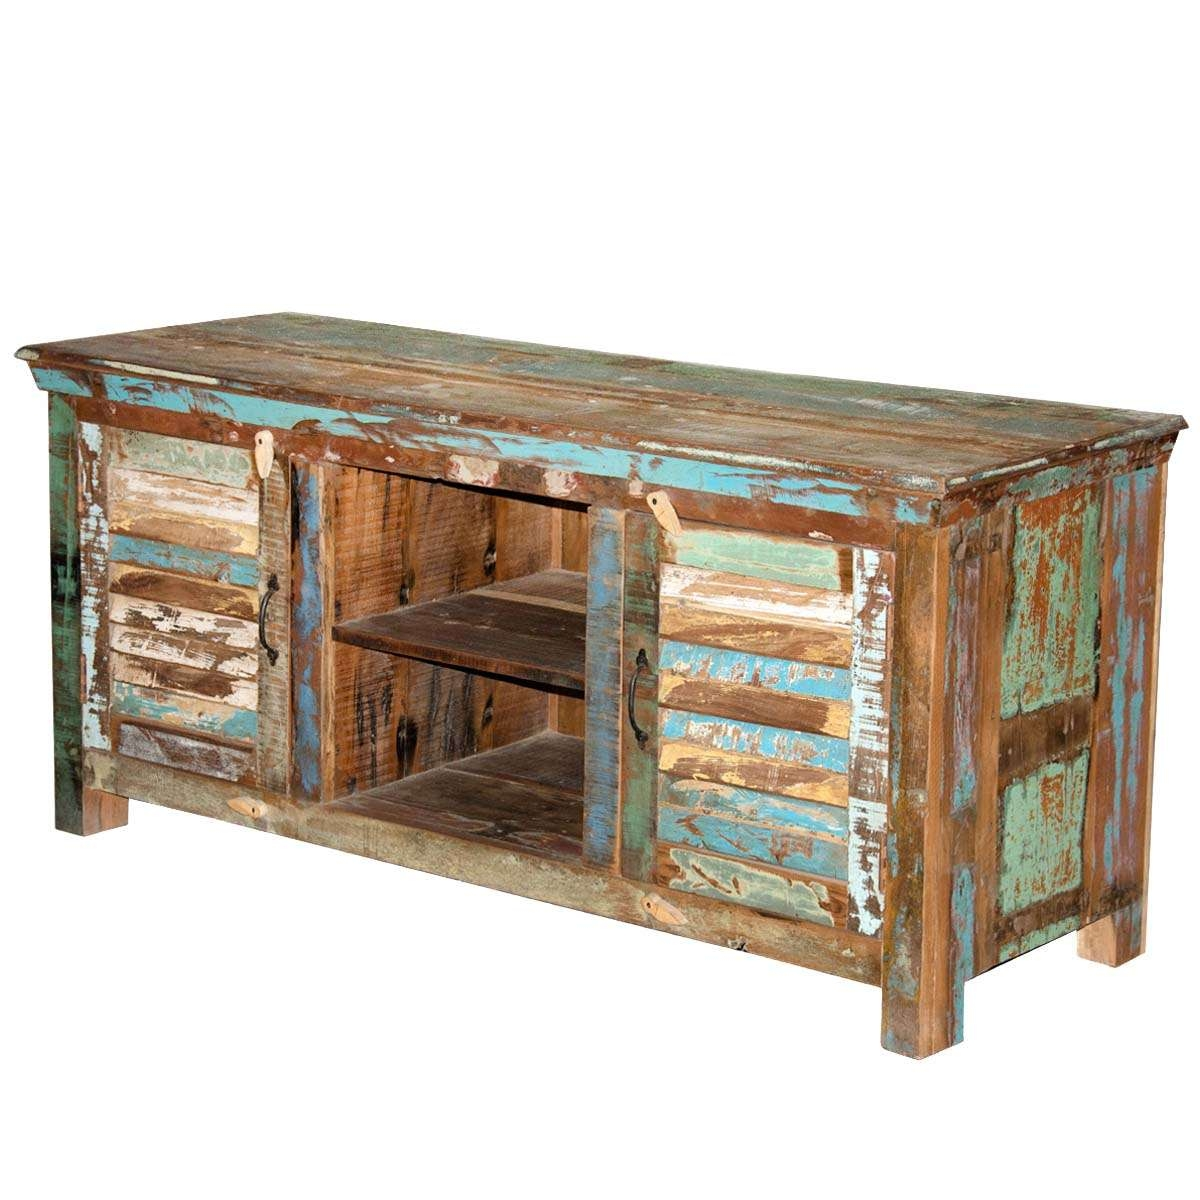 Rustic Shutter Doors Reclaimed Wood Tv Stand Media Console With Regard To Wood Tv Stands (View 10 of 15)